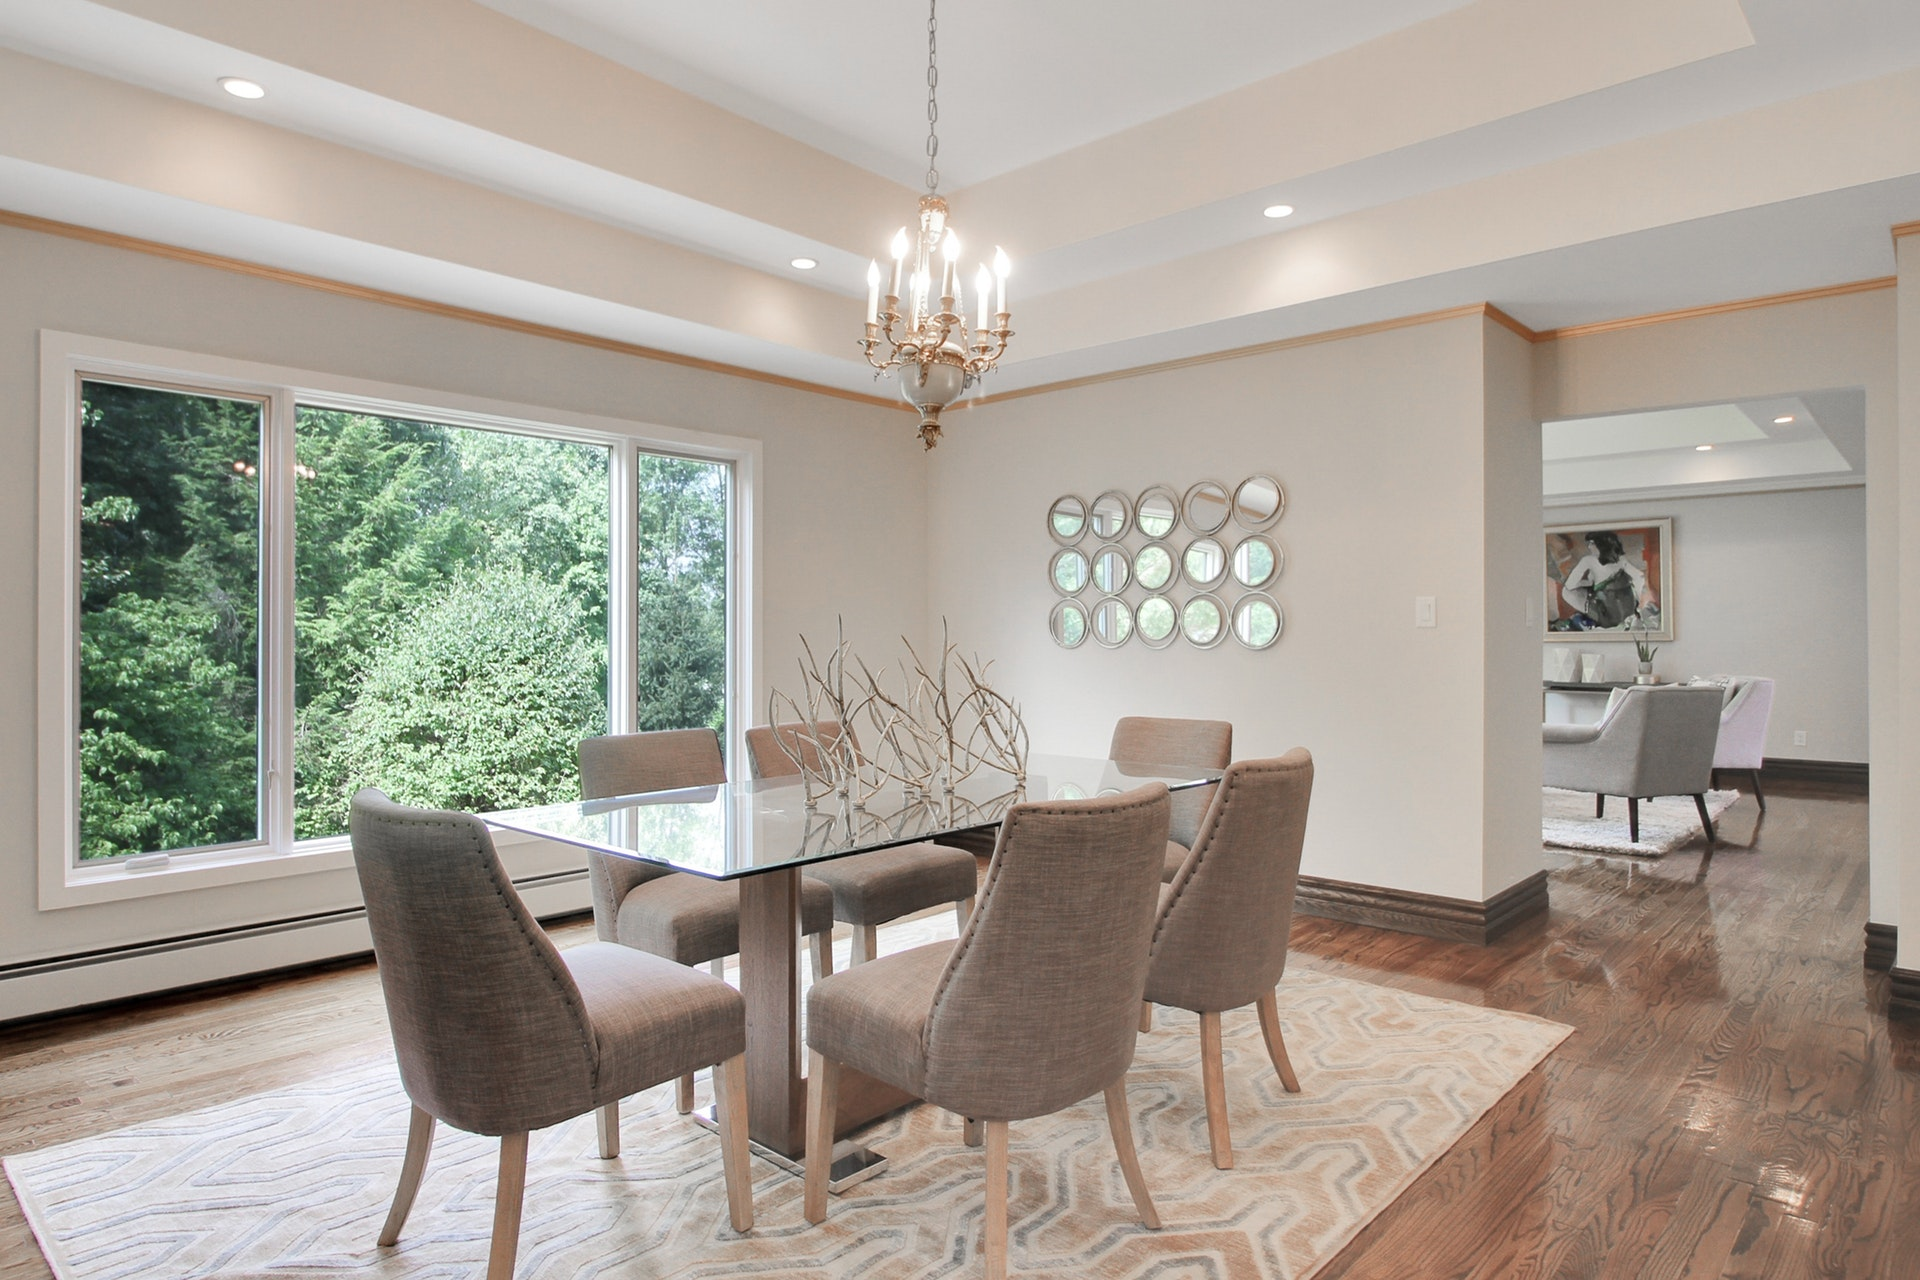 57 Westview Dining Room